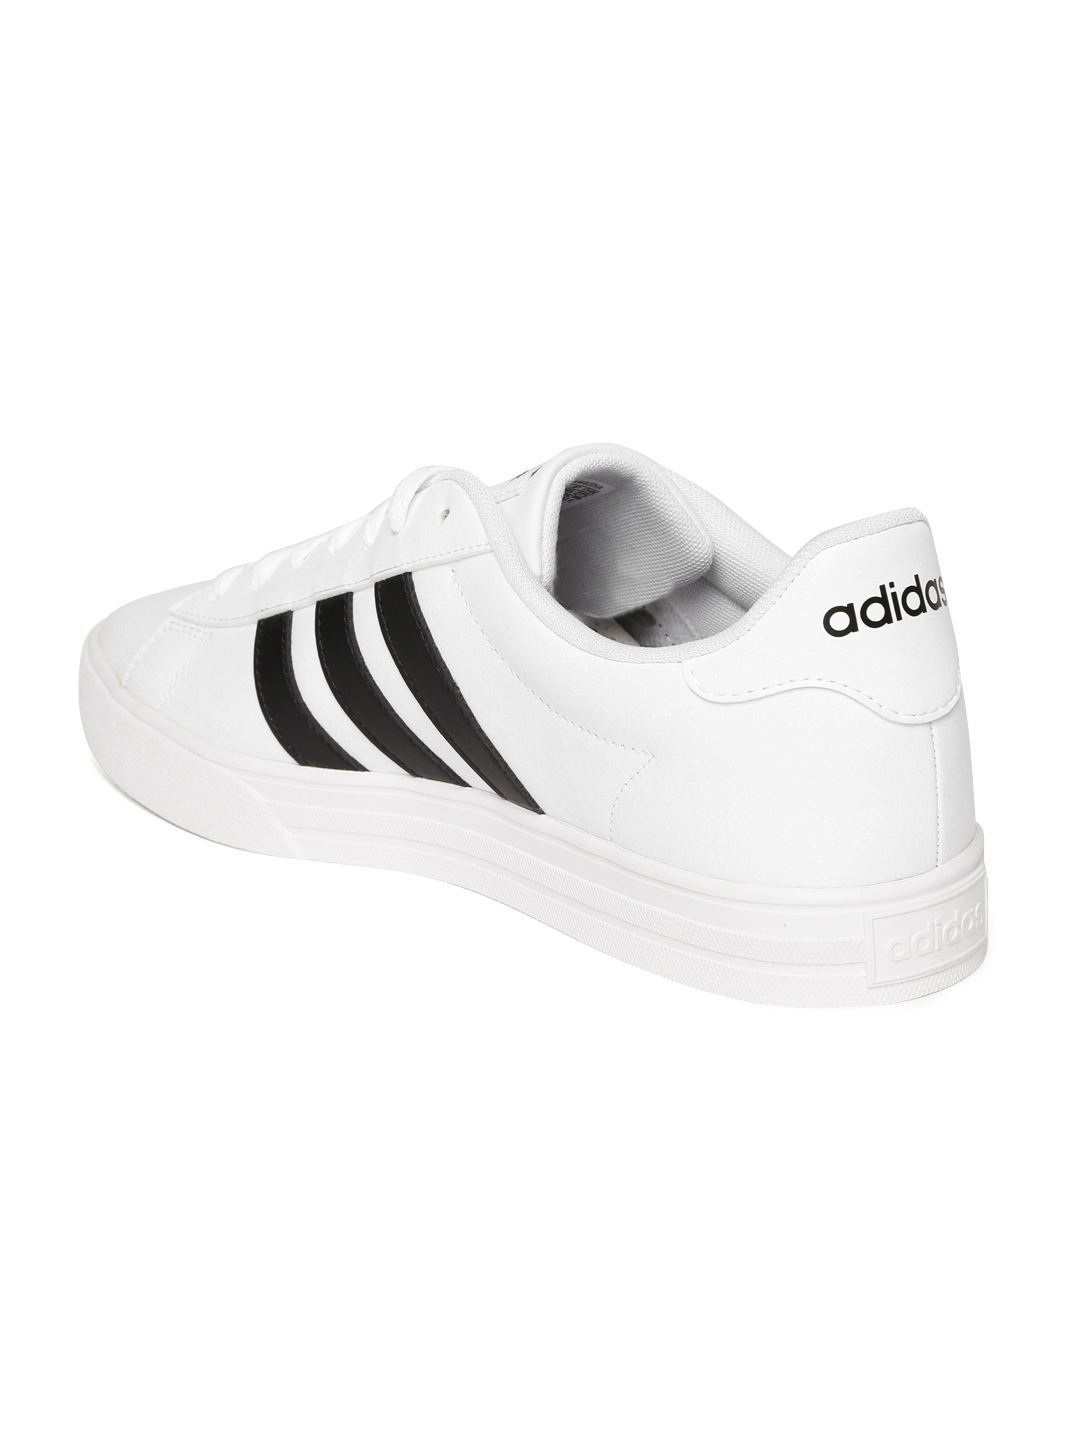 bbc53b14f41 Buy ADIDAS Men White DAILY 2.0 Leather Sneakers - Casual Shoes for ...